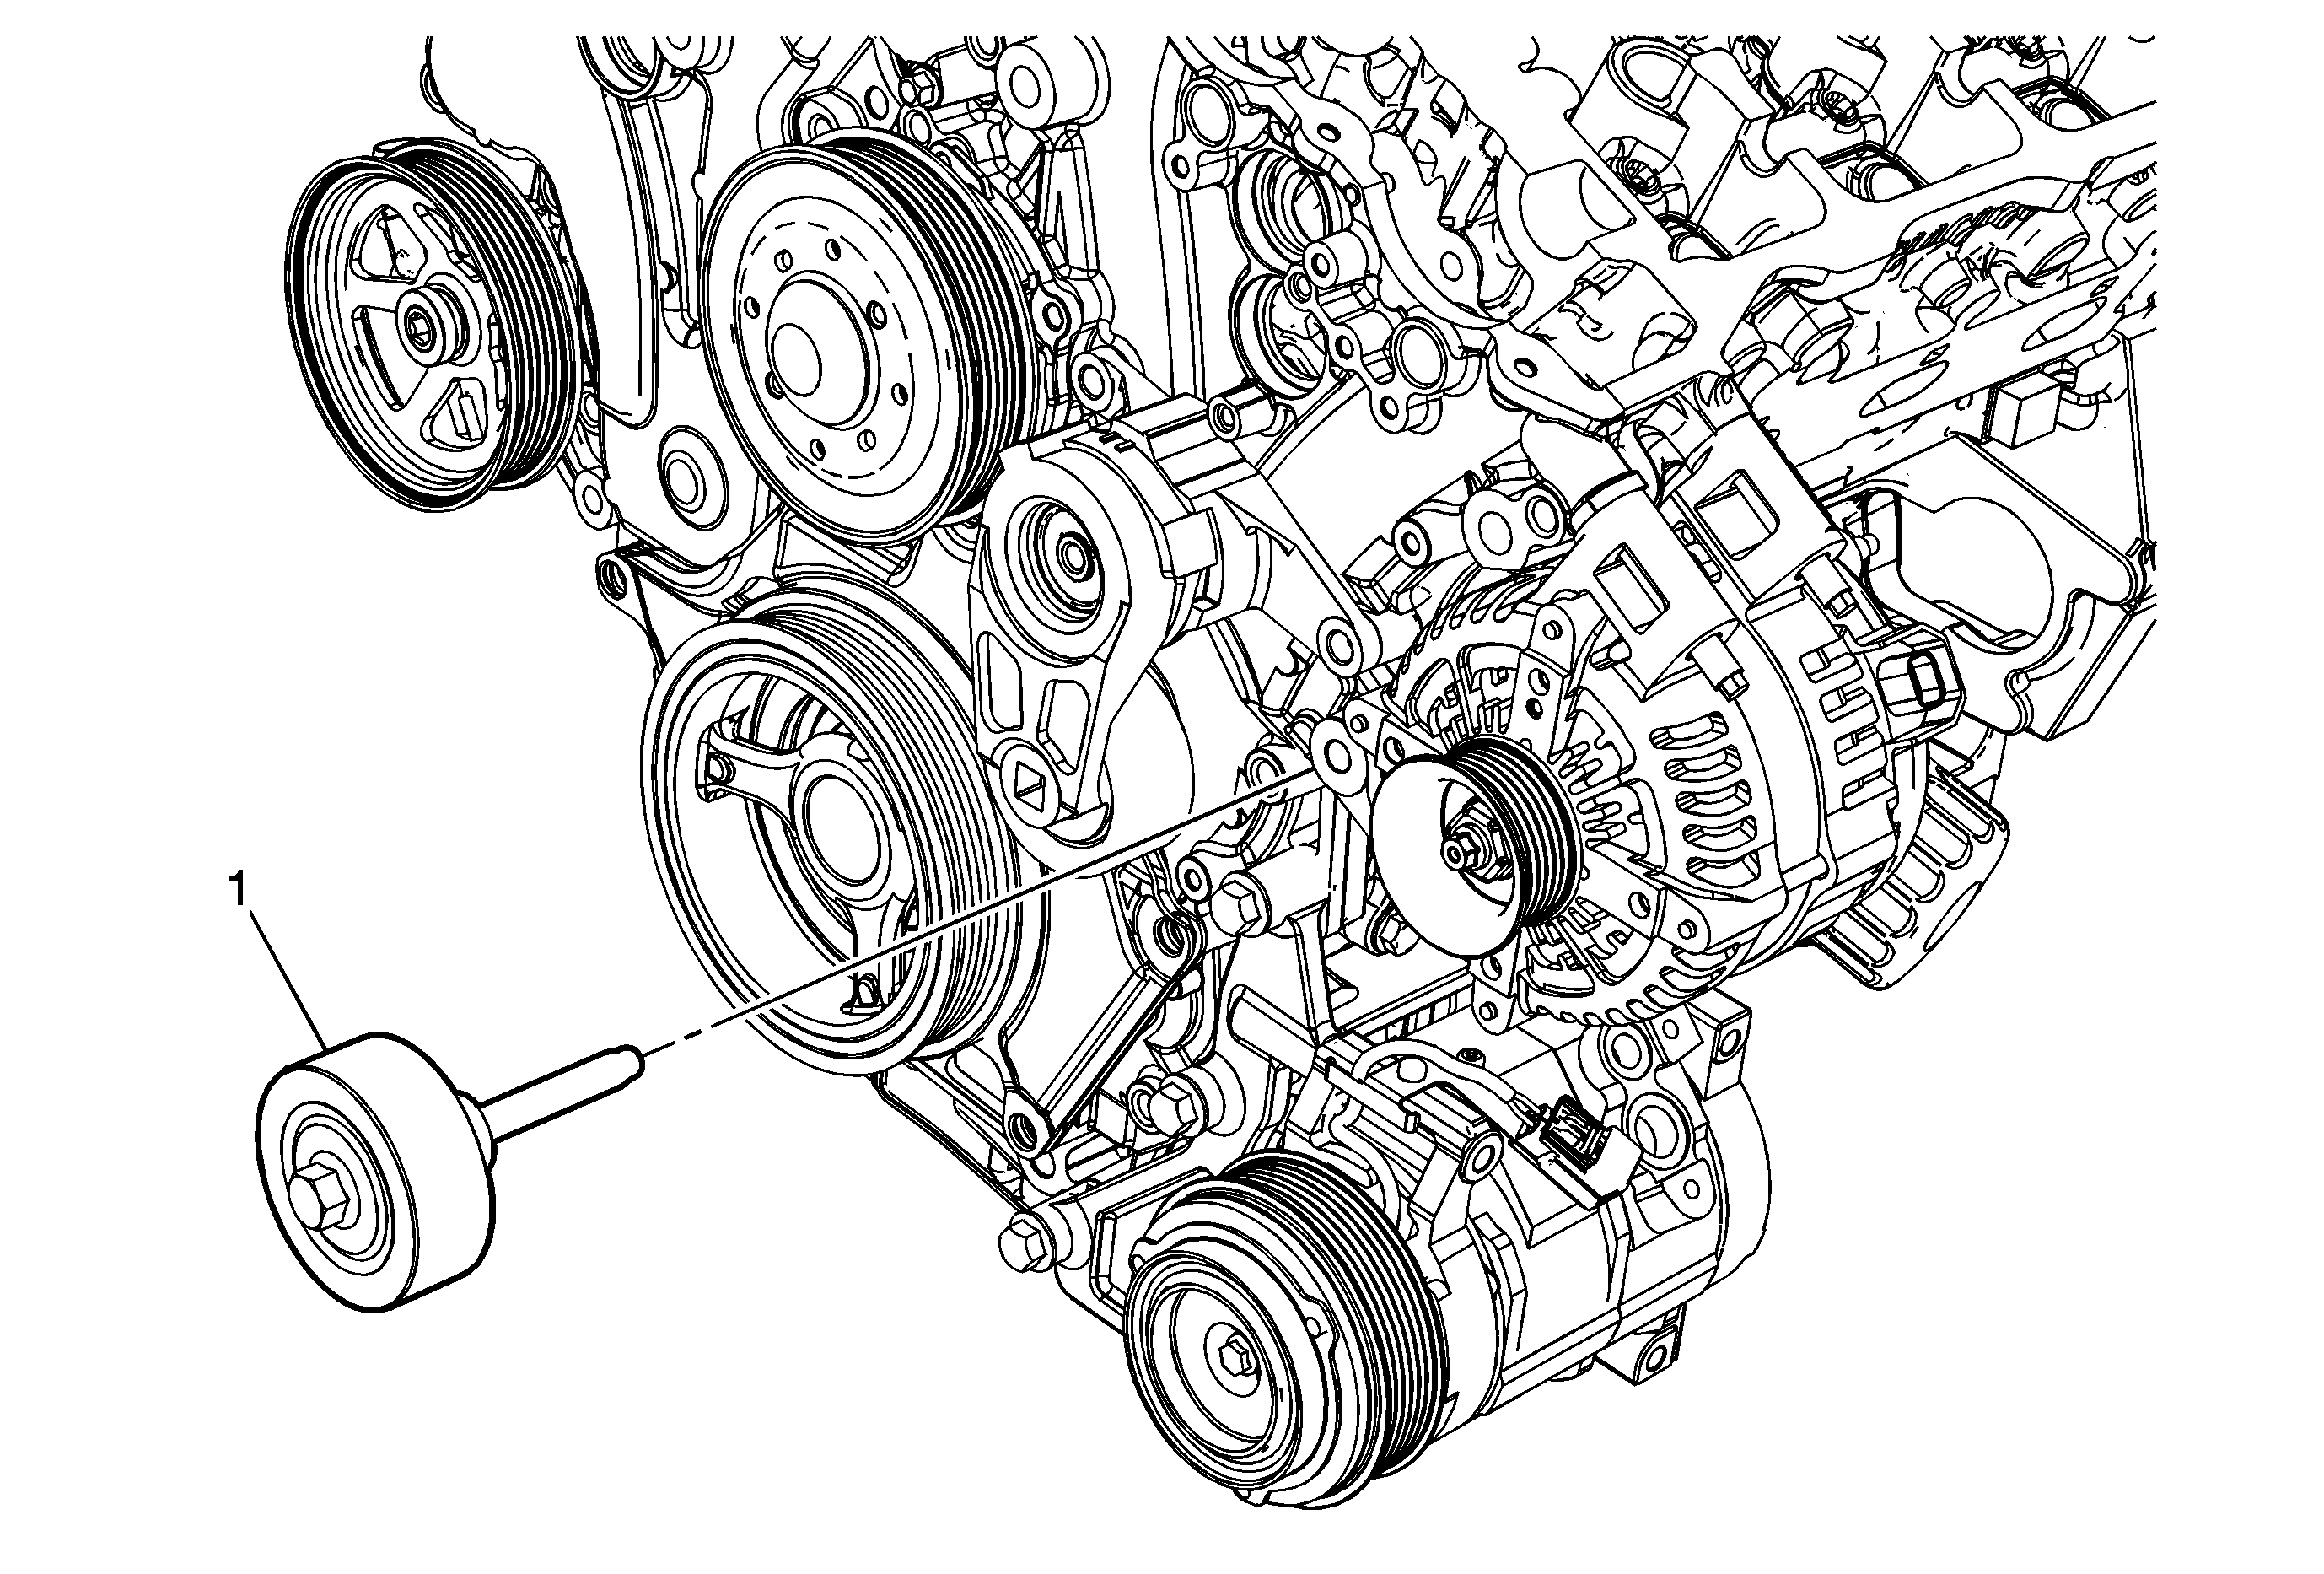 Buick Enclave Engine Diagram : Buick Enclave 3 6 Engine